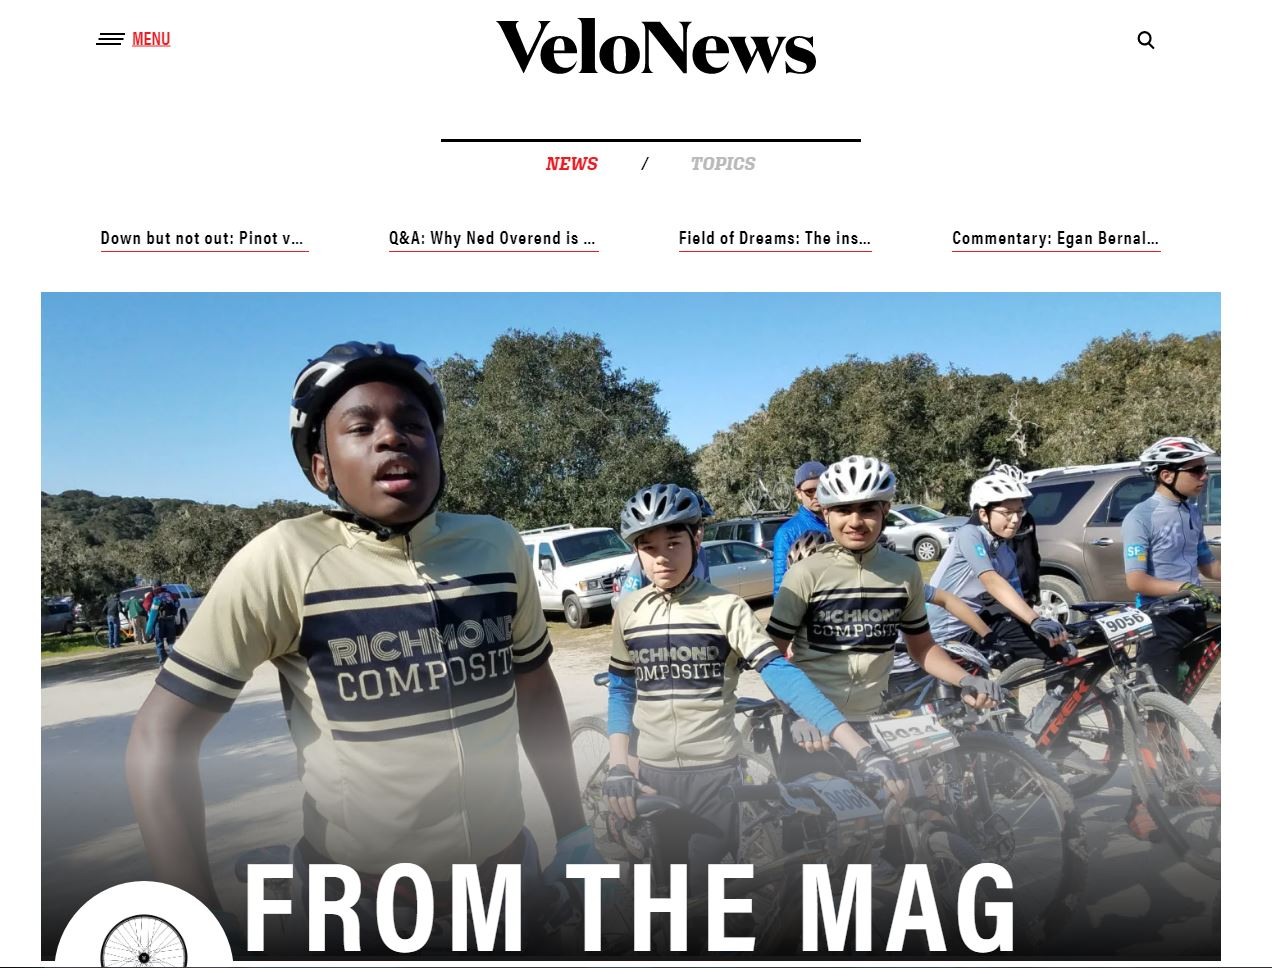 Image from a feature story in VeloNews